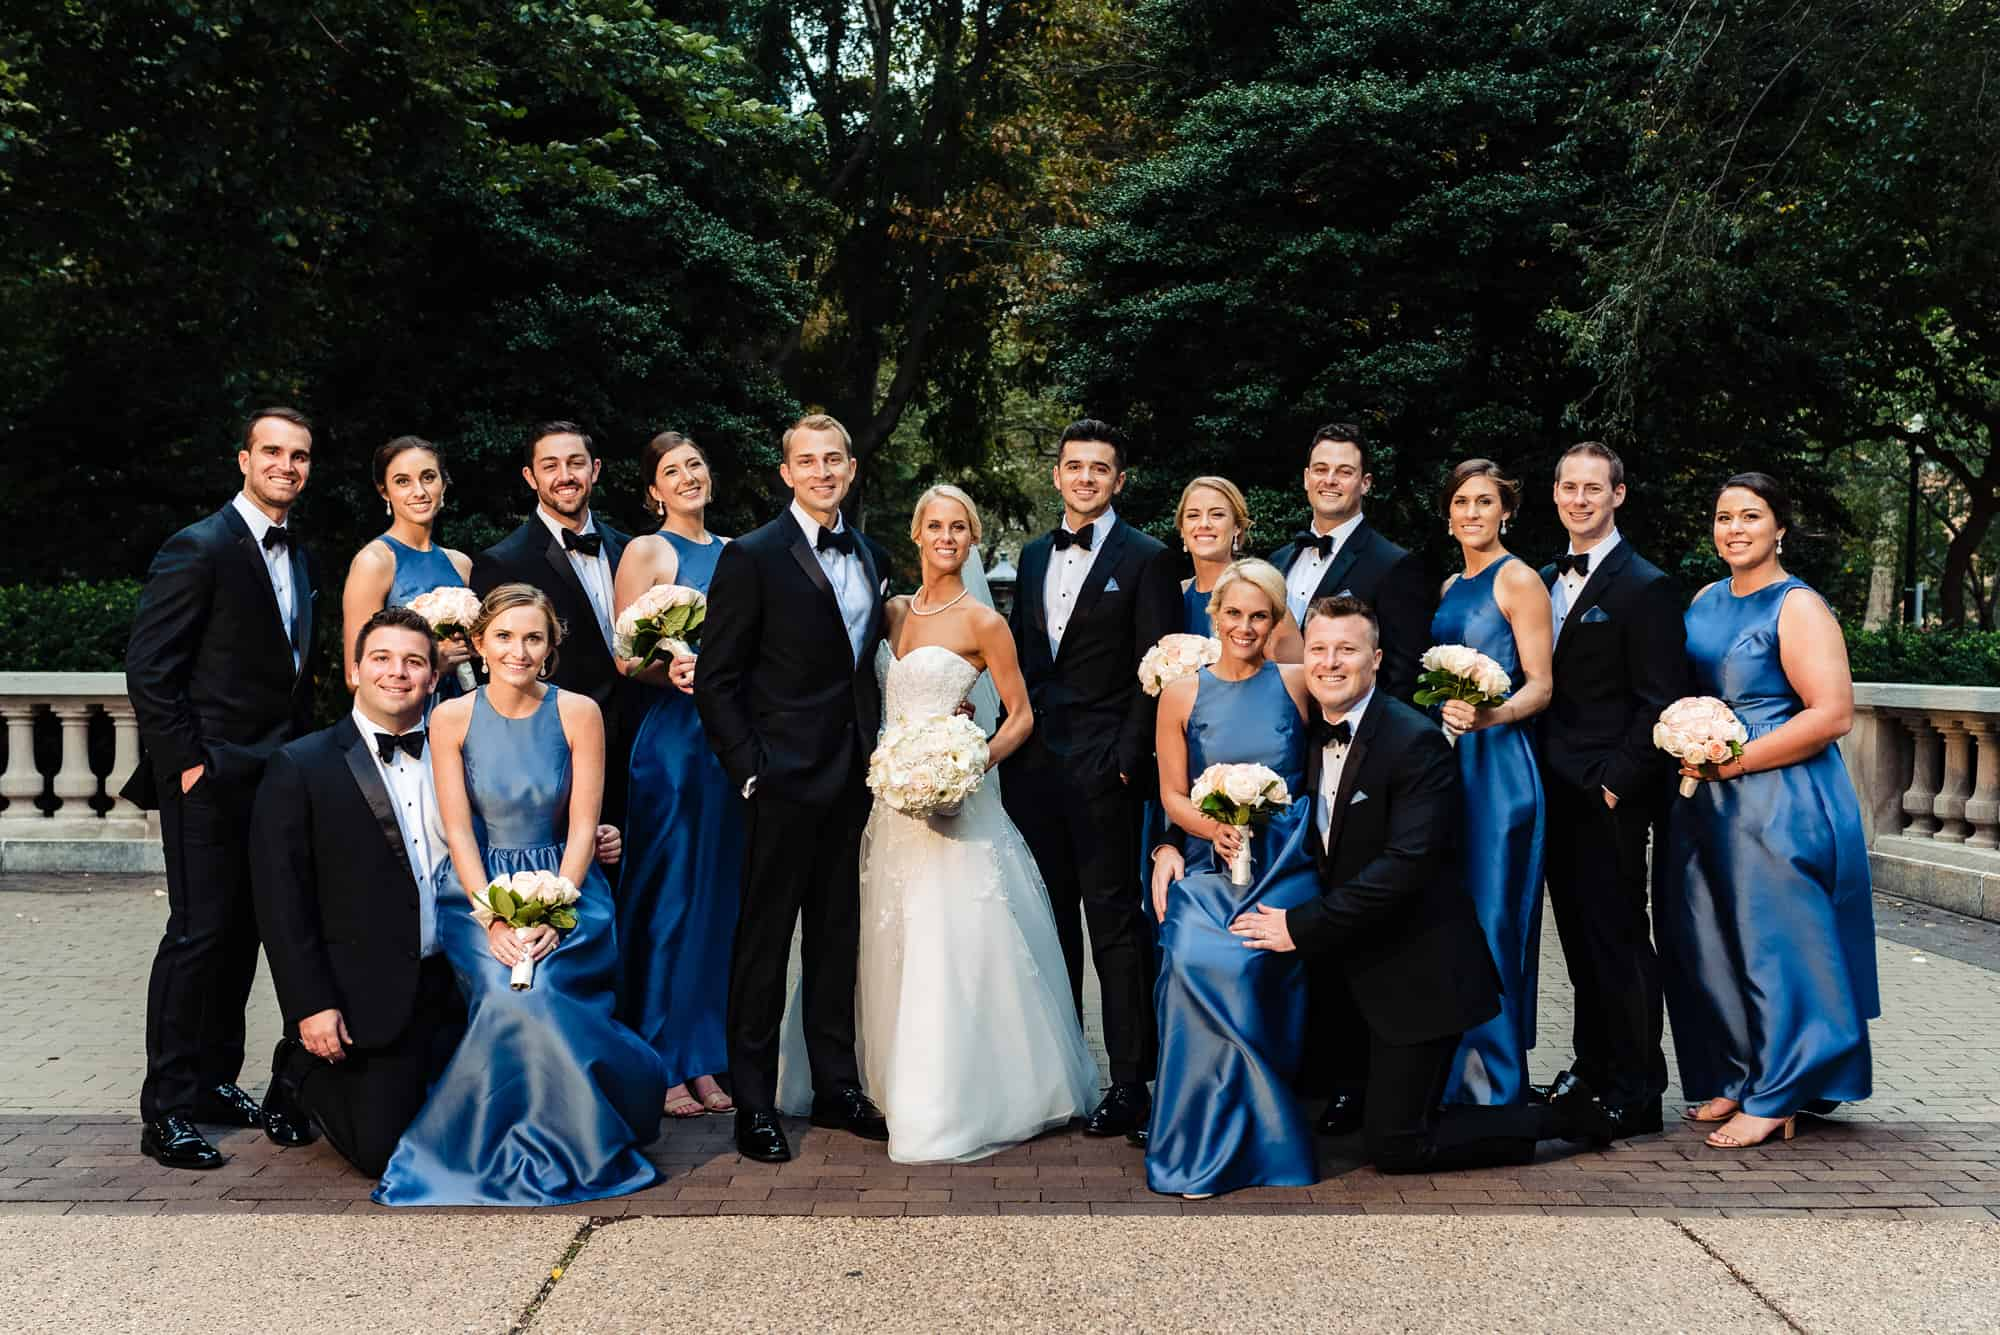 Bridal party group photo in city park